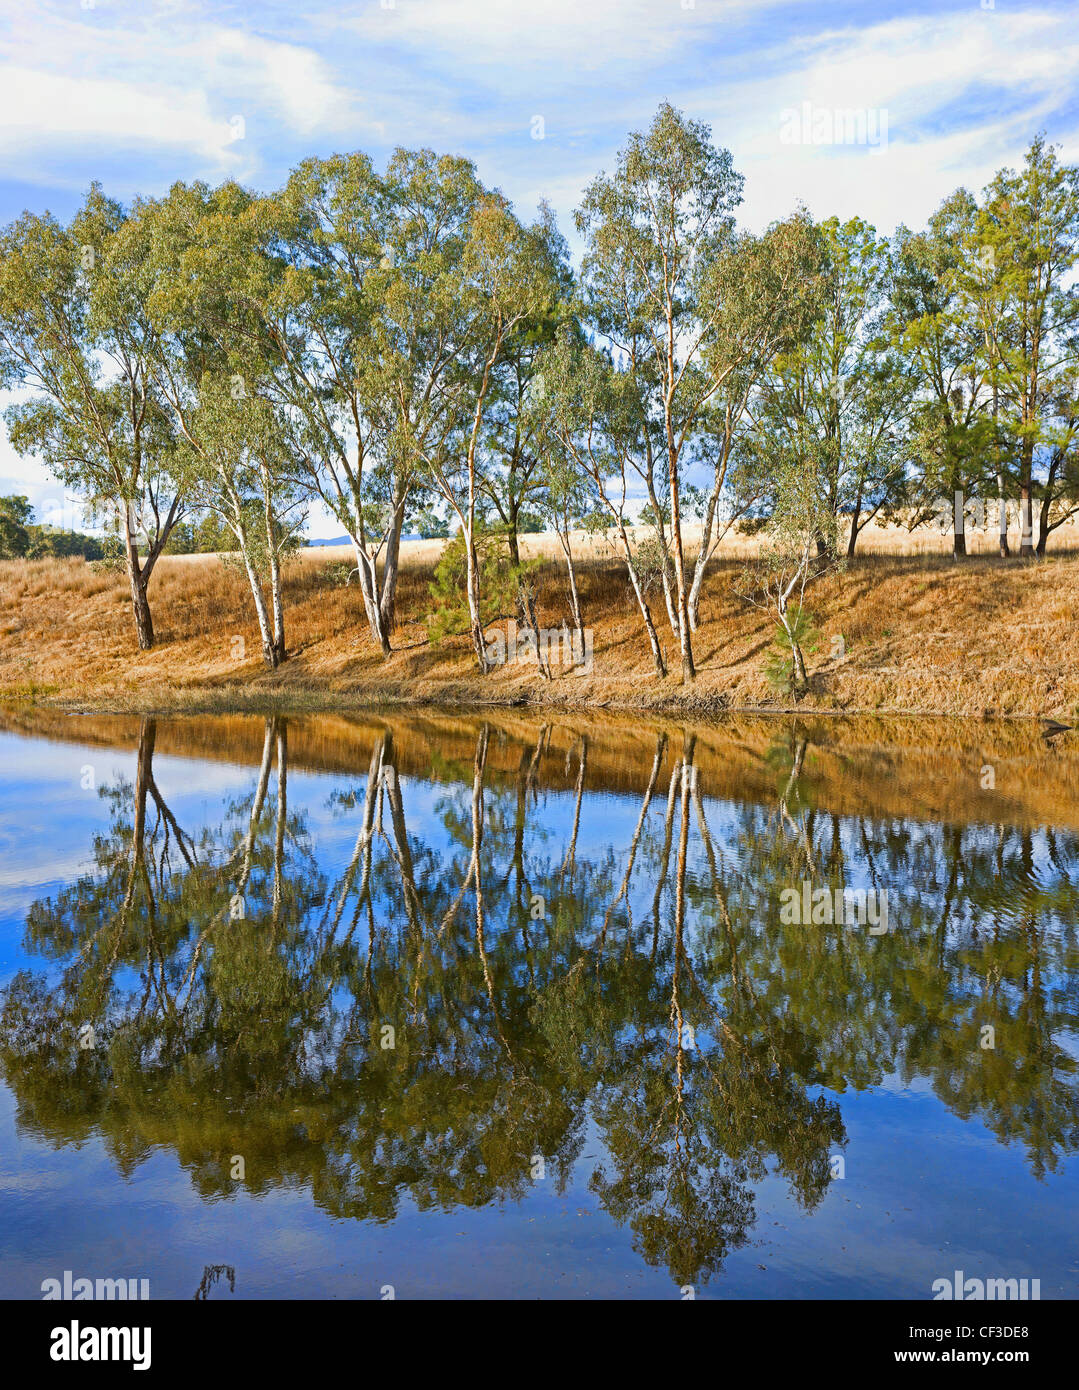 gum or eucalyptus trees reflecting in the river - Stock Image